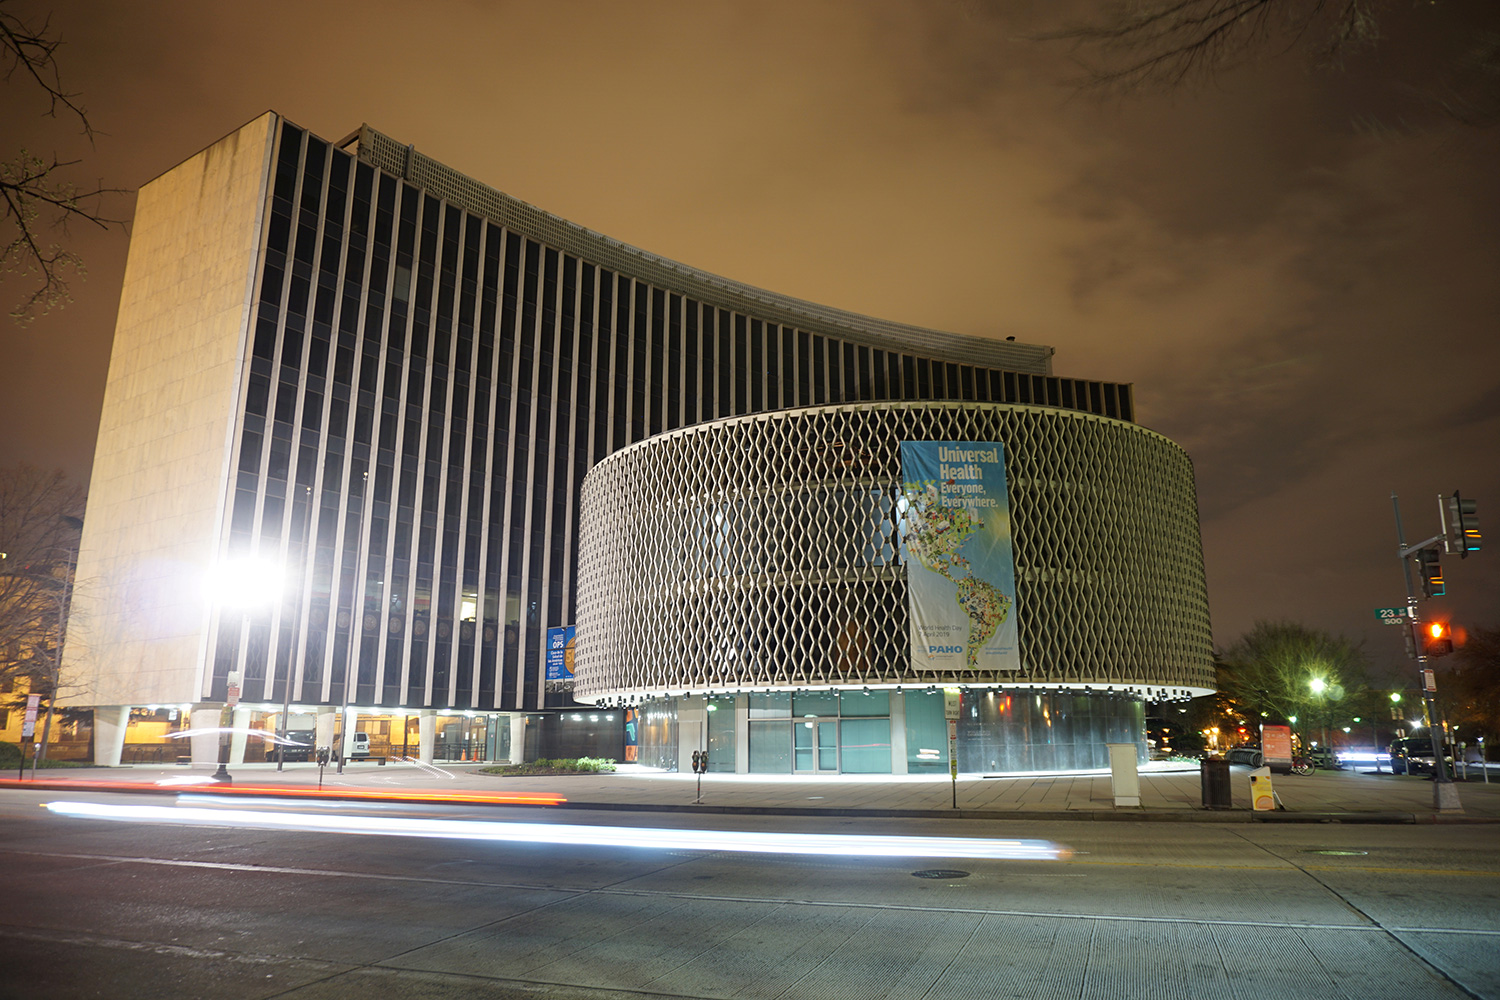 Picture shows the large building at night with the eerie light produced by a long exposure with an SLR camera.